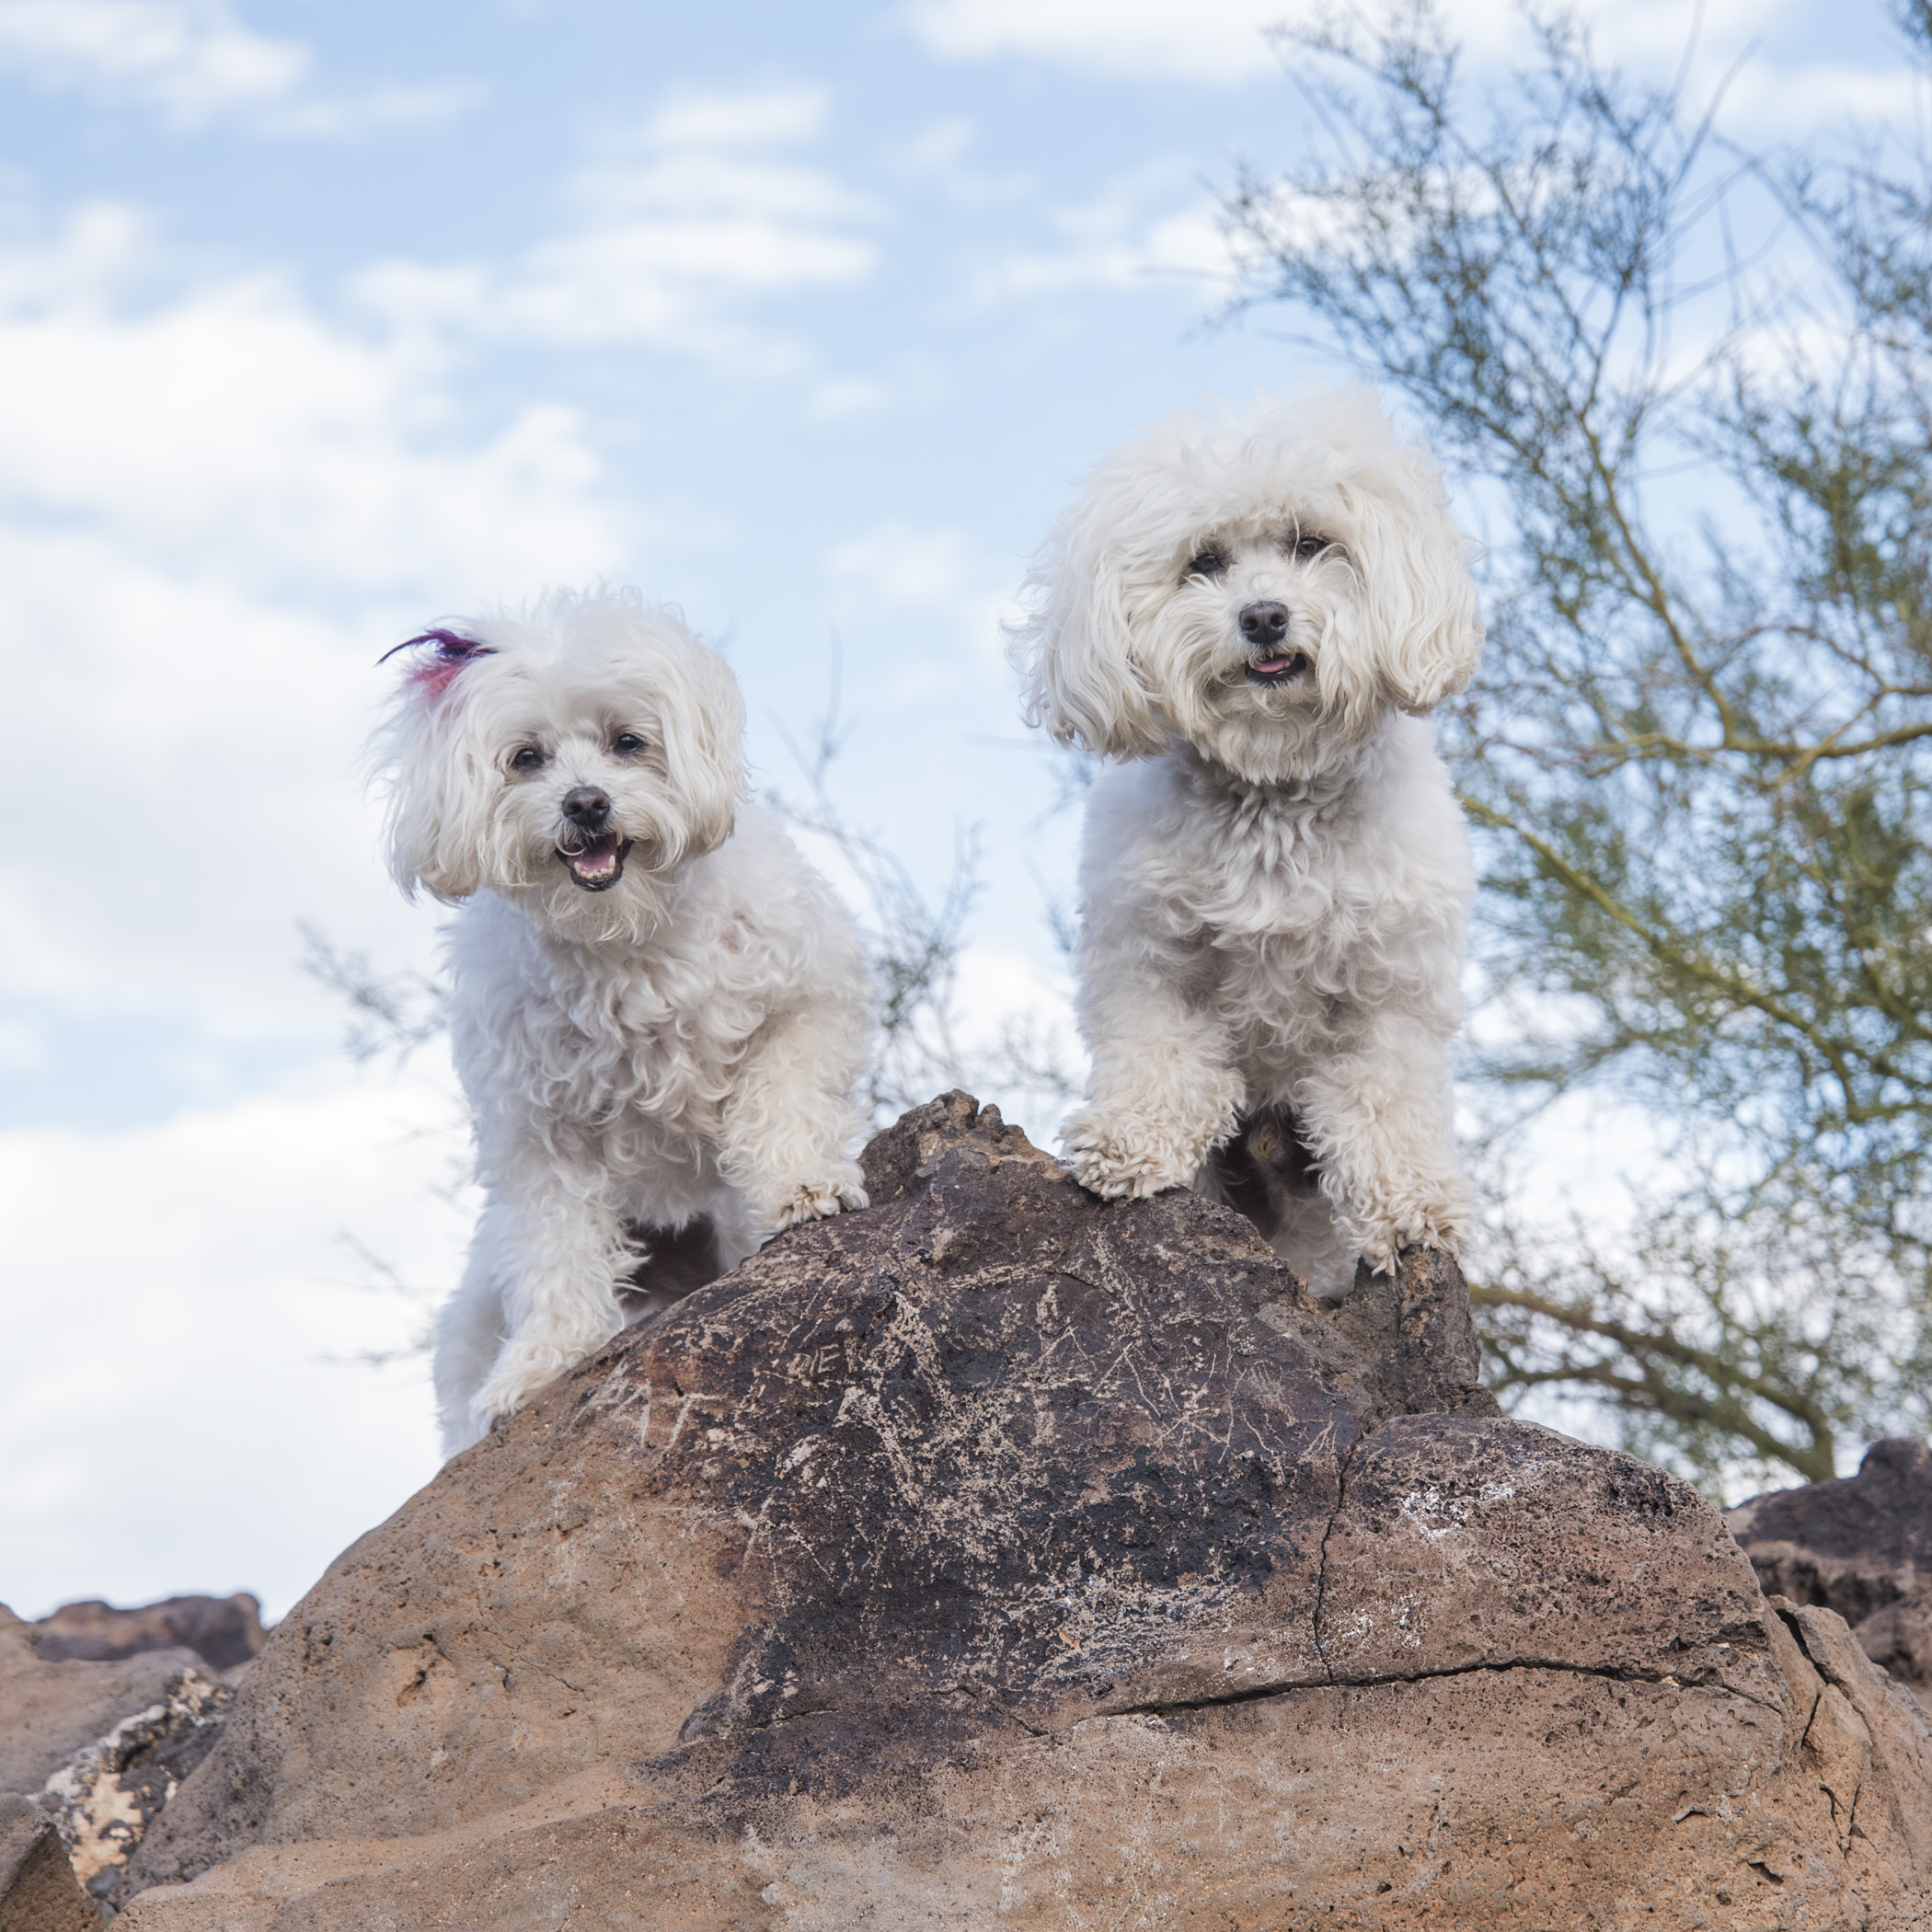 Queen & King of the Mountain!! That's right we climbed all the way to the top on our tiny little legs! You're jealous, we know!